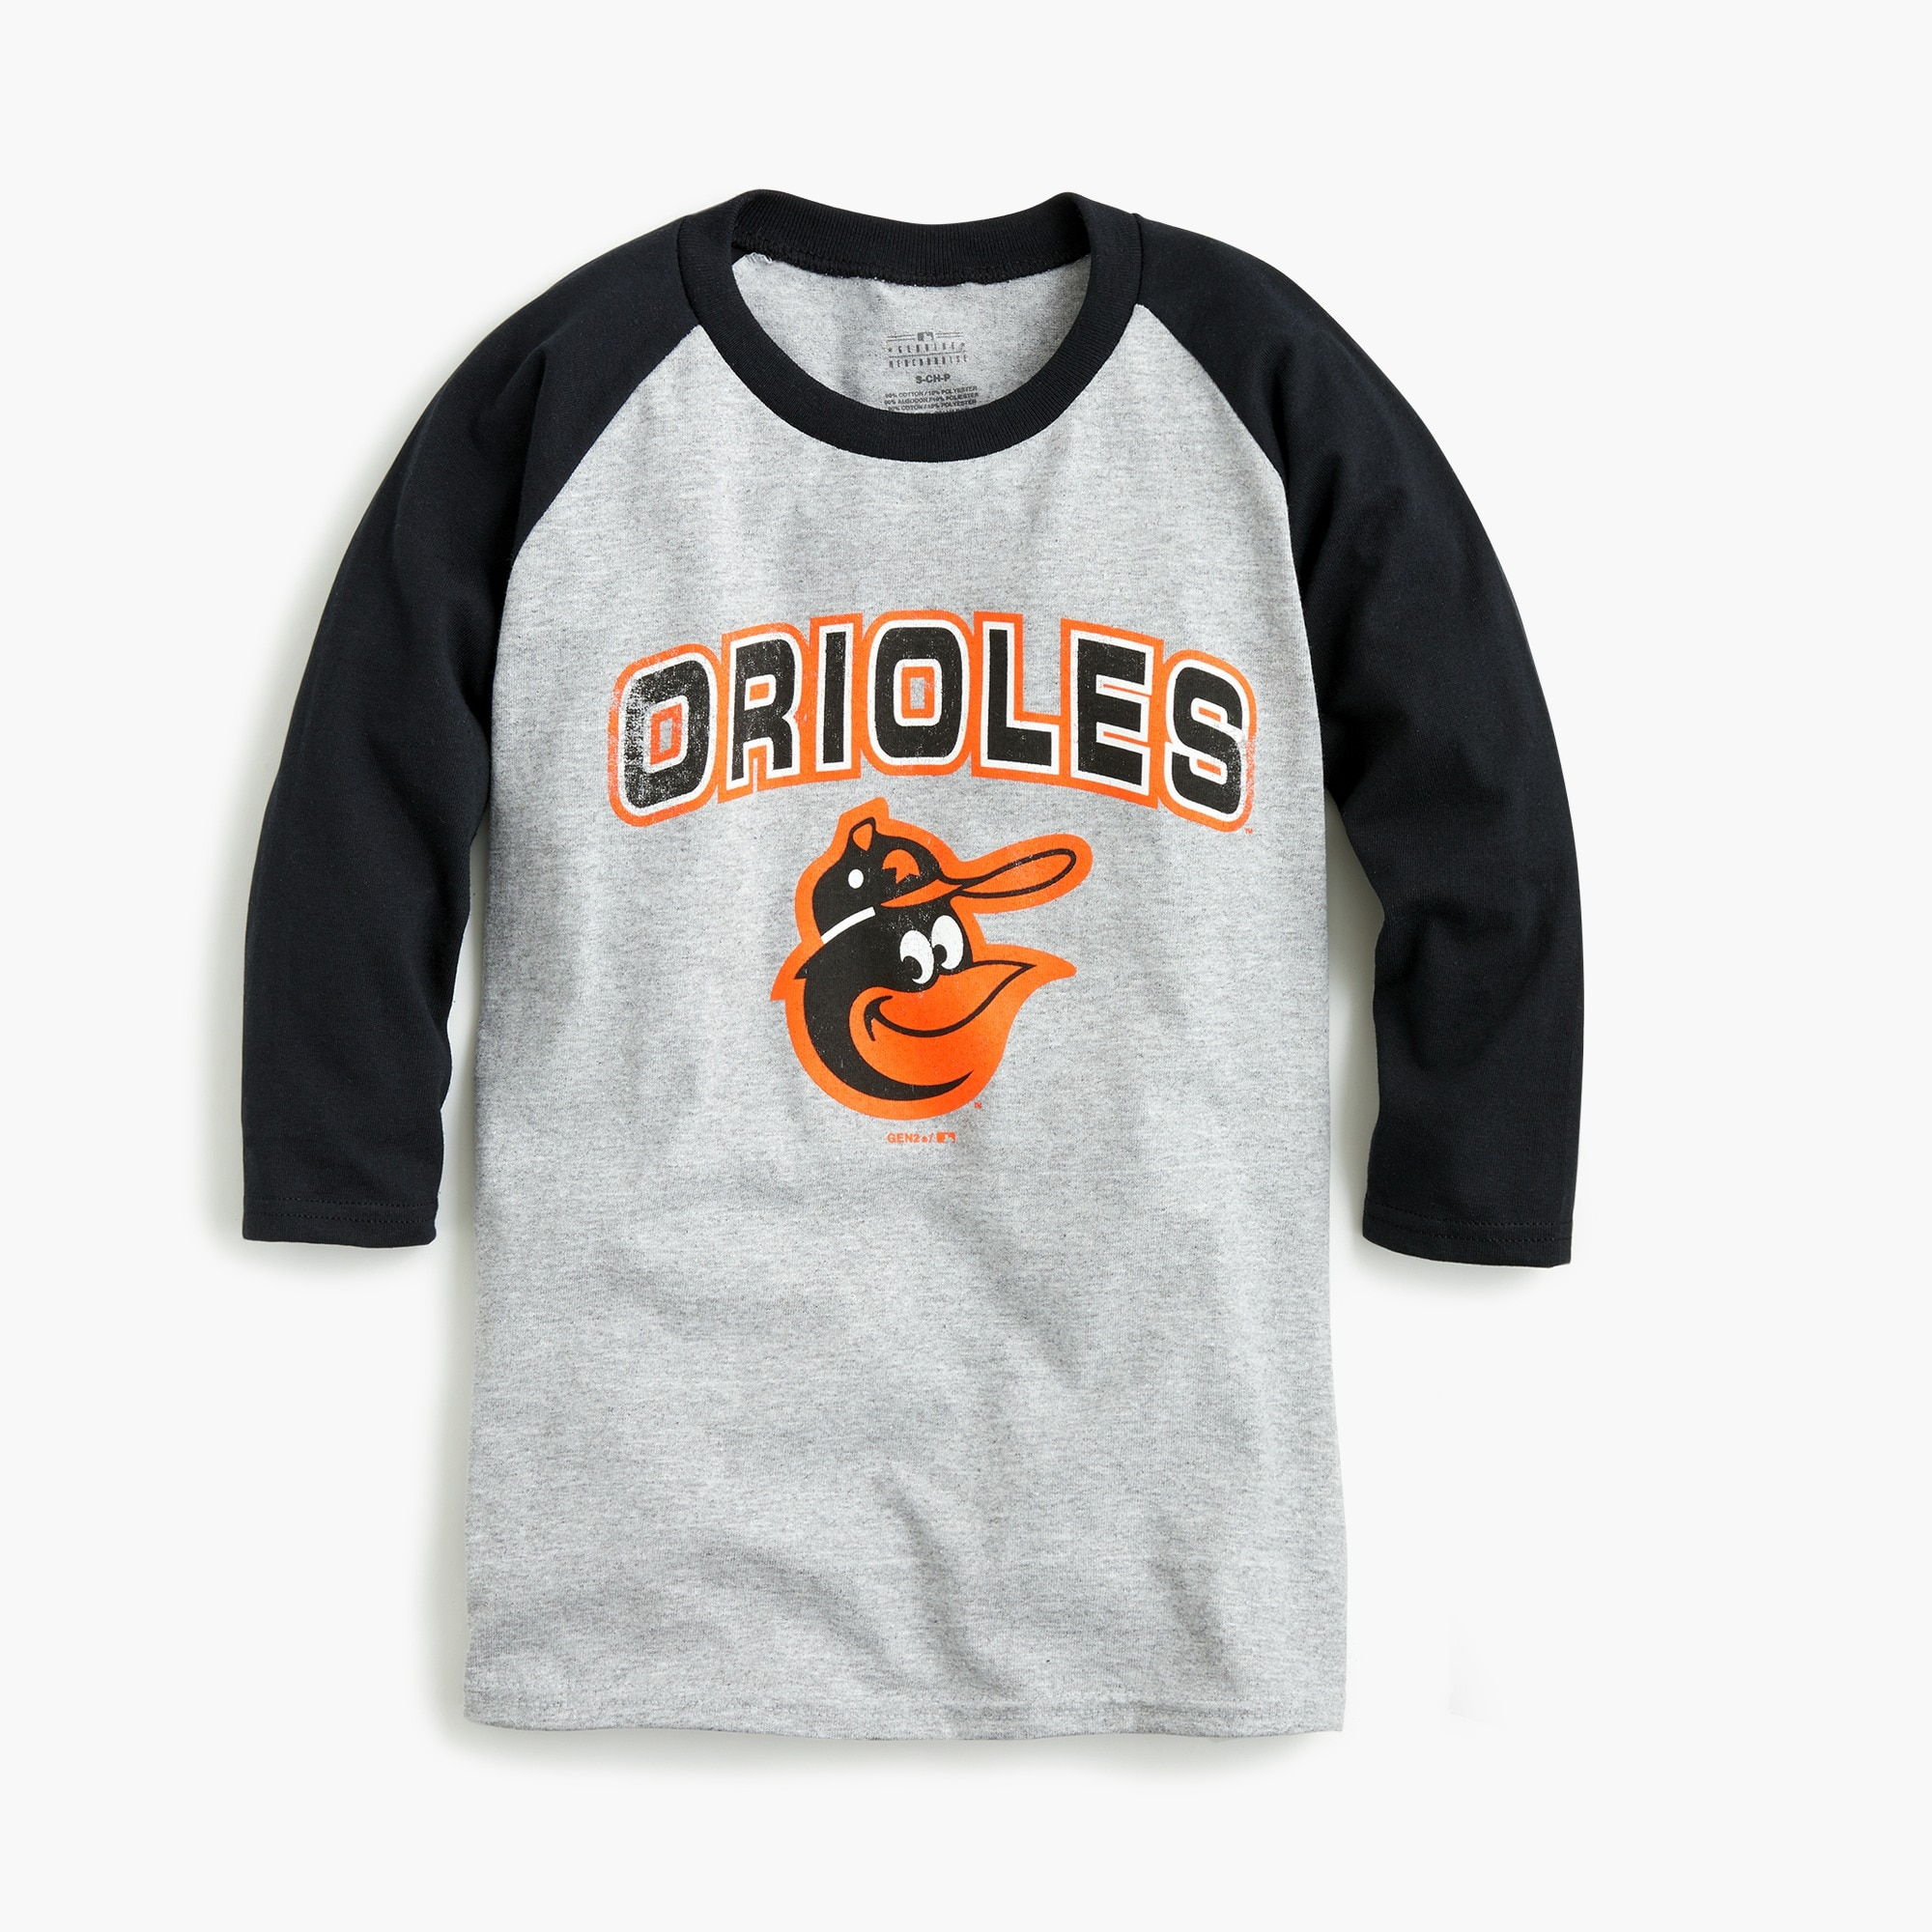 Kids' Baltimore Orioles baseball T-shirt boy graphics shop c